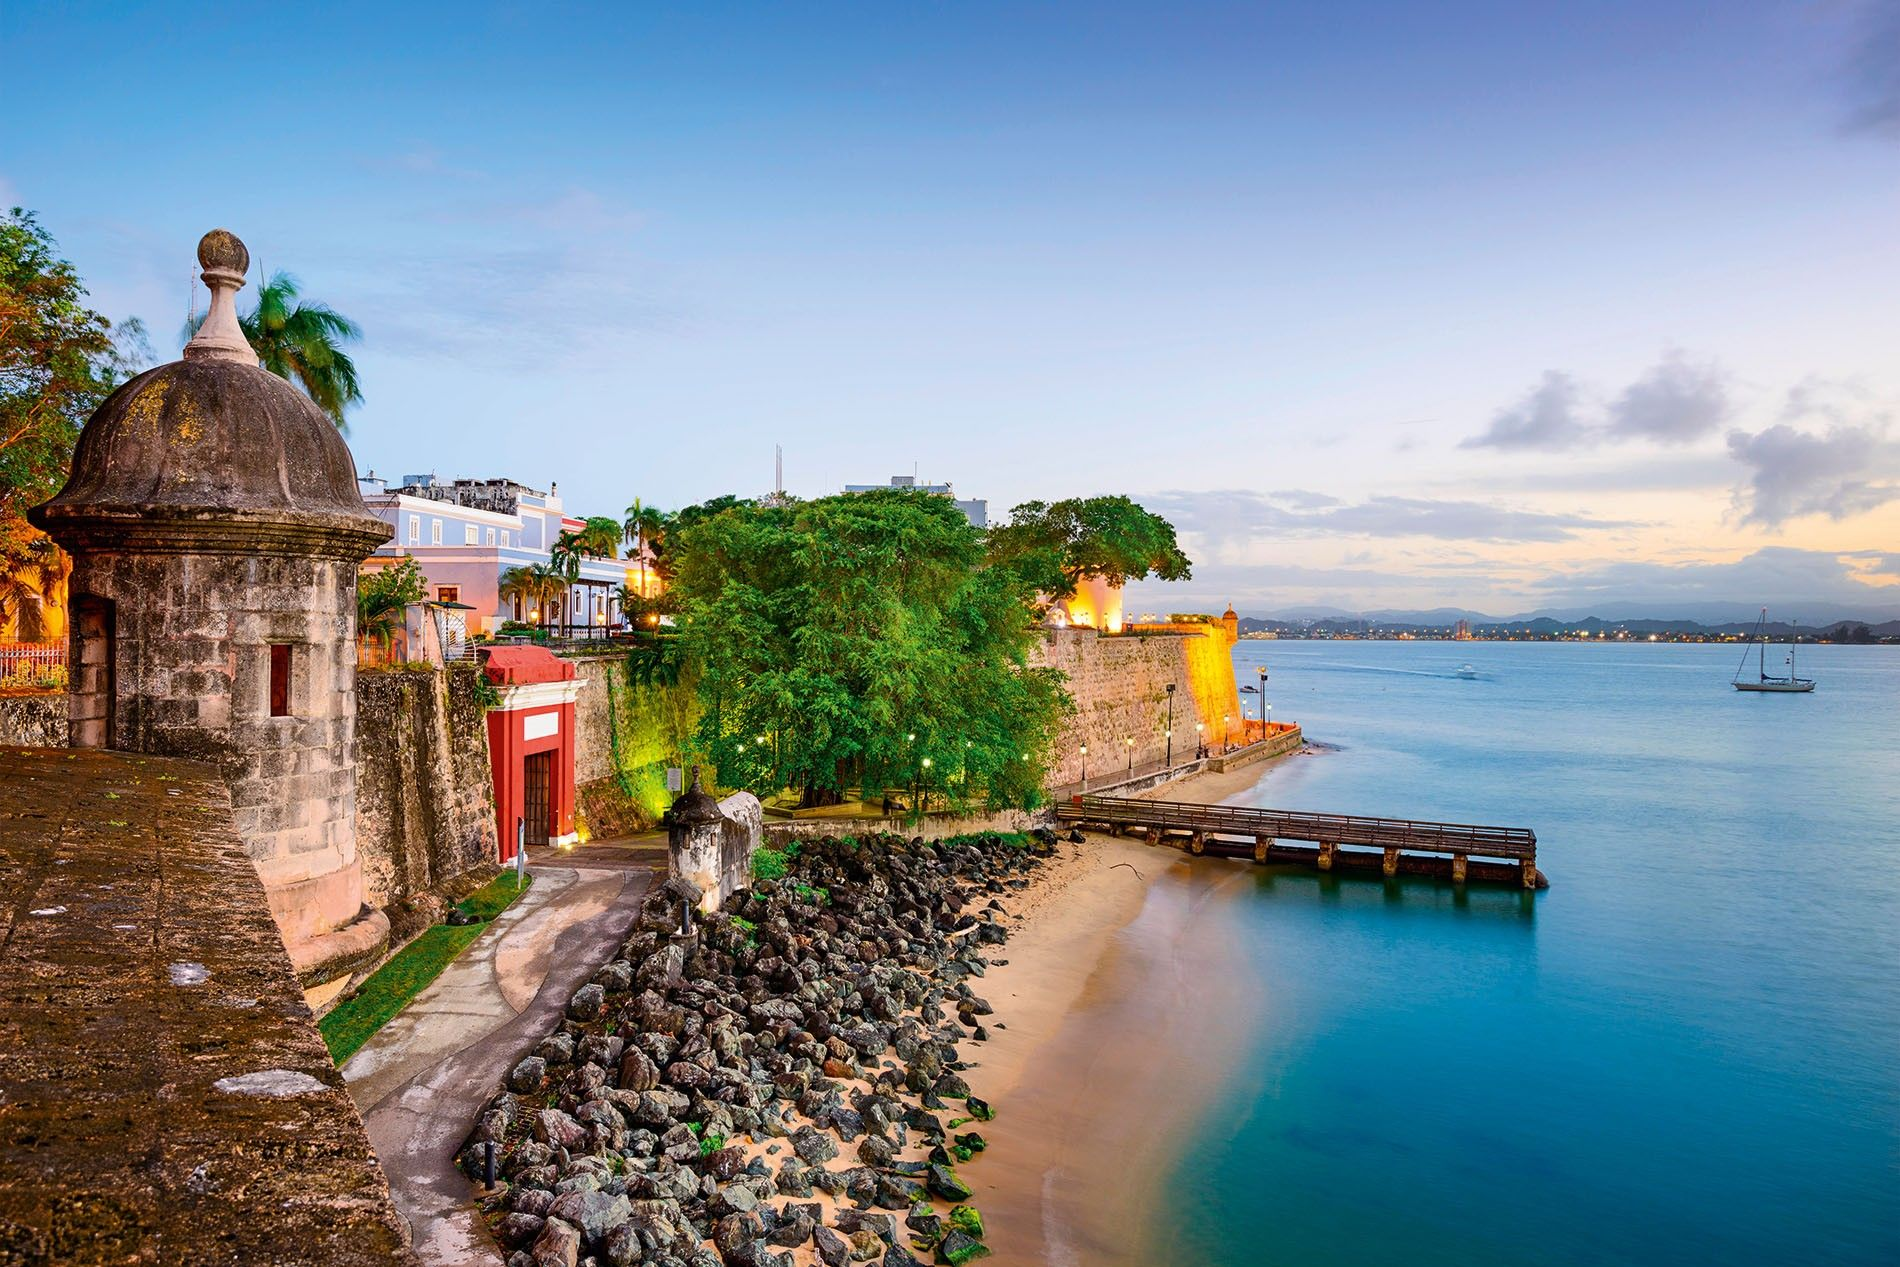 The view over Paseo de la Princesa in Old San Juan. The Puerto Rican capital turned ...